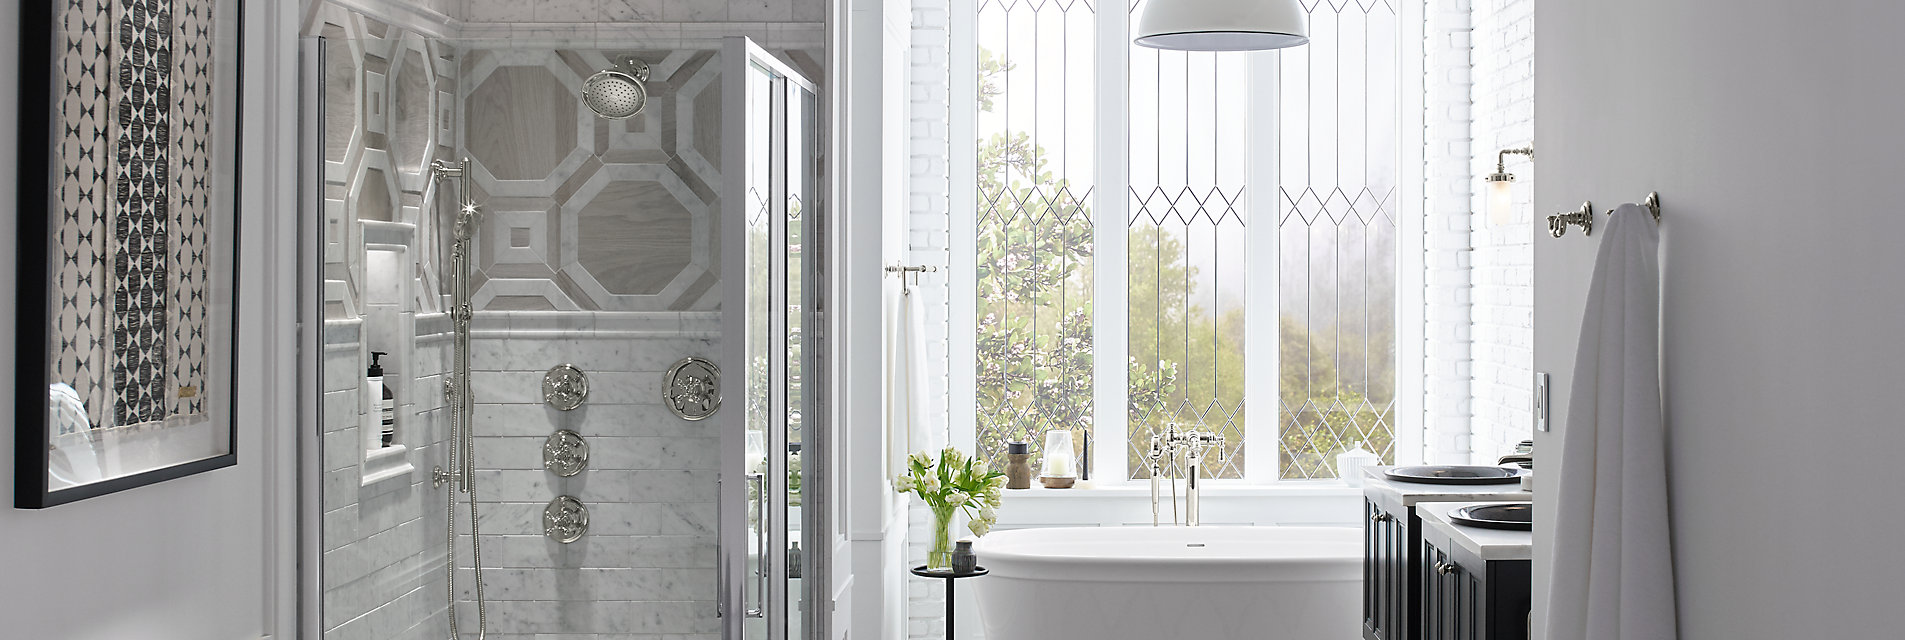 KOHLER Canada | Toilets, Showers, Sinks, Faucets and More for